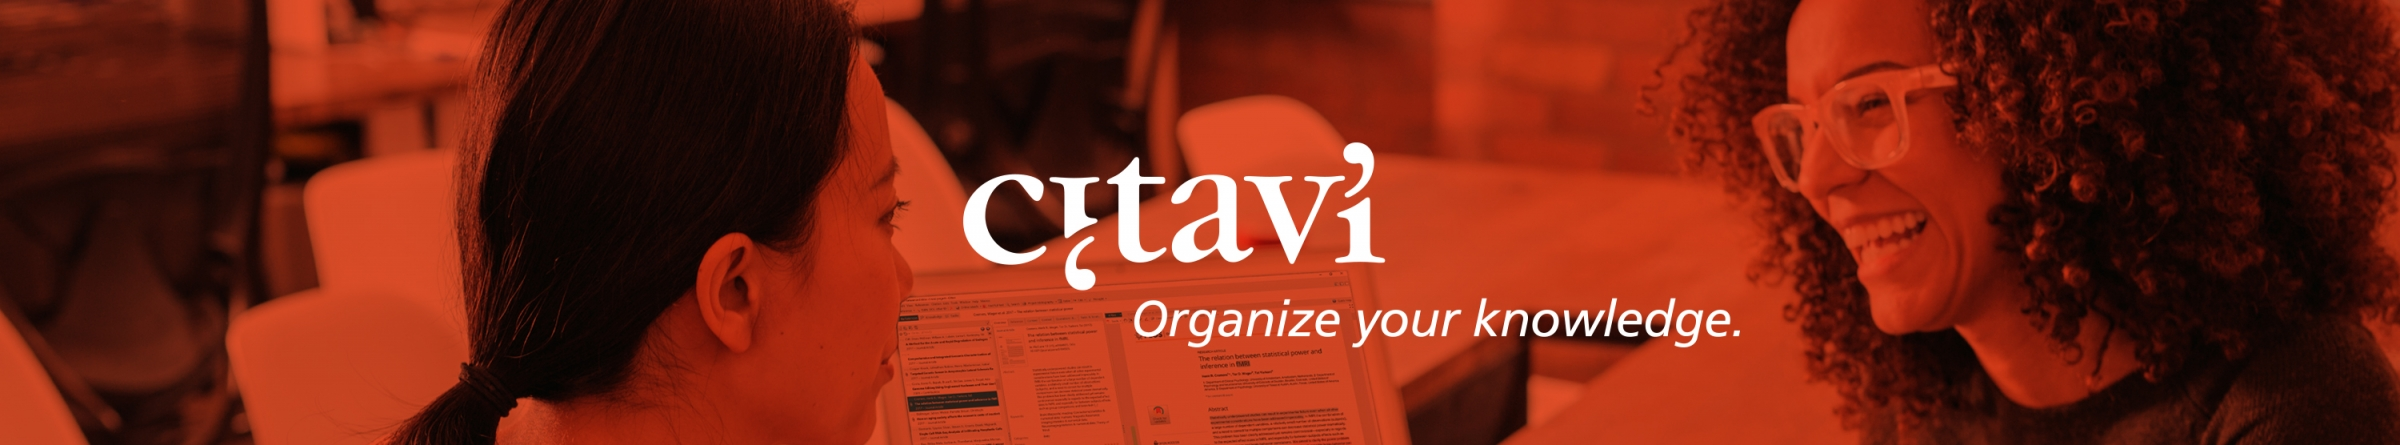 made-for-science-Citavi